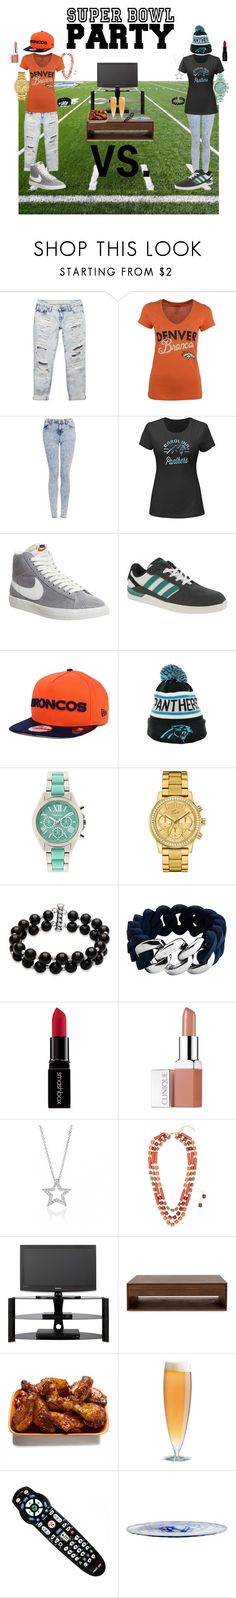 """""""Super Bowl 50"""" by scottejarvis ❤ liked on Polyvore featuring Wet Seal, Topshop, NIKE, adidas, New Era, Style & Co., Lacoste, Belk & Co., The Rubz and Smashbox"""